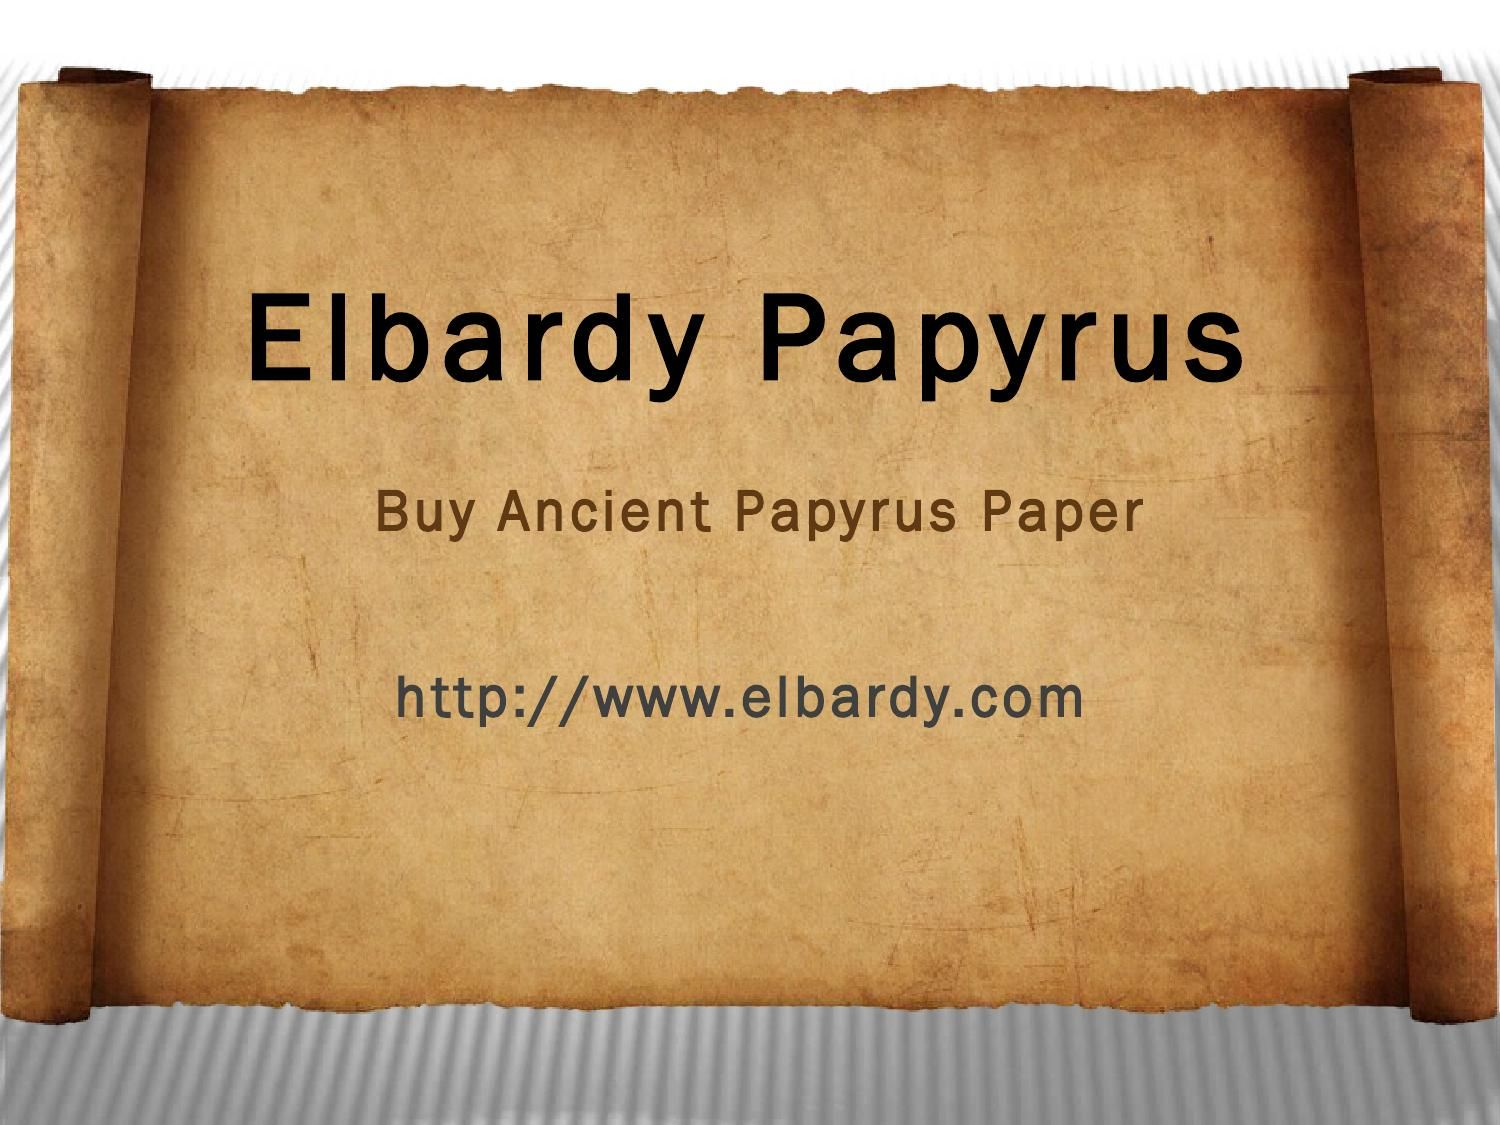 You play we work homework help papyrus paper for sale response egyptian painting on papyrus paper stock photos egyptian img kristyandbryce Gallery